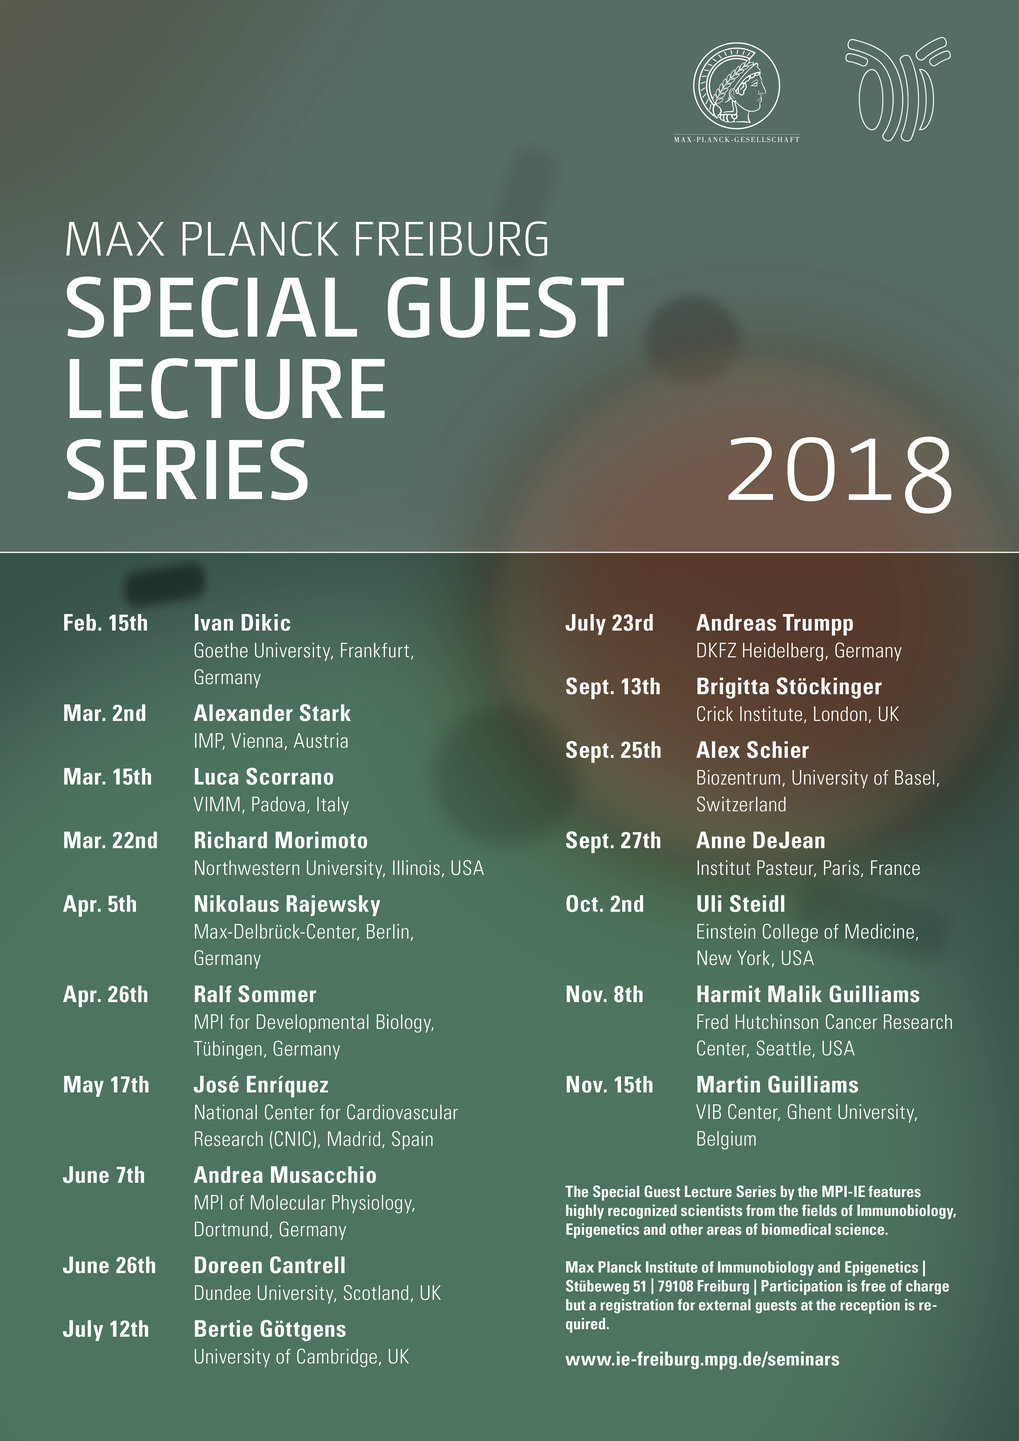 Special Guest Lecture Series 2018